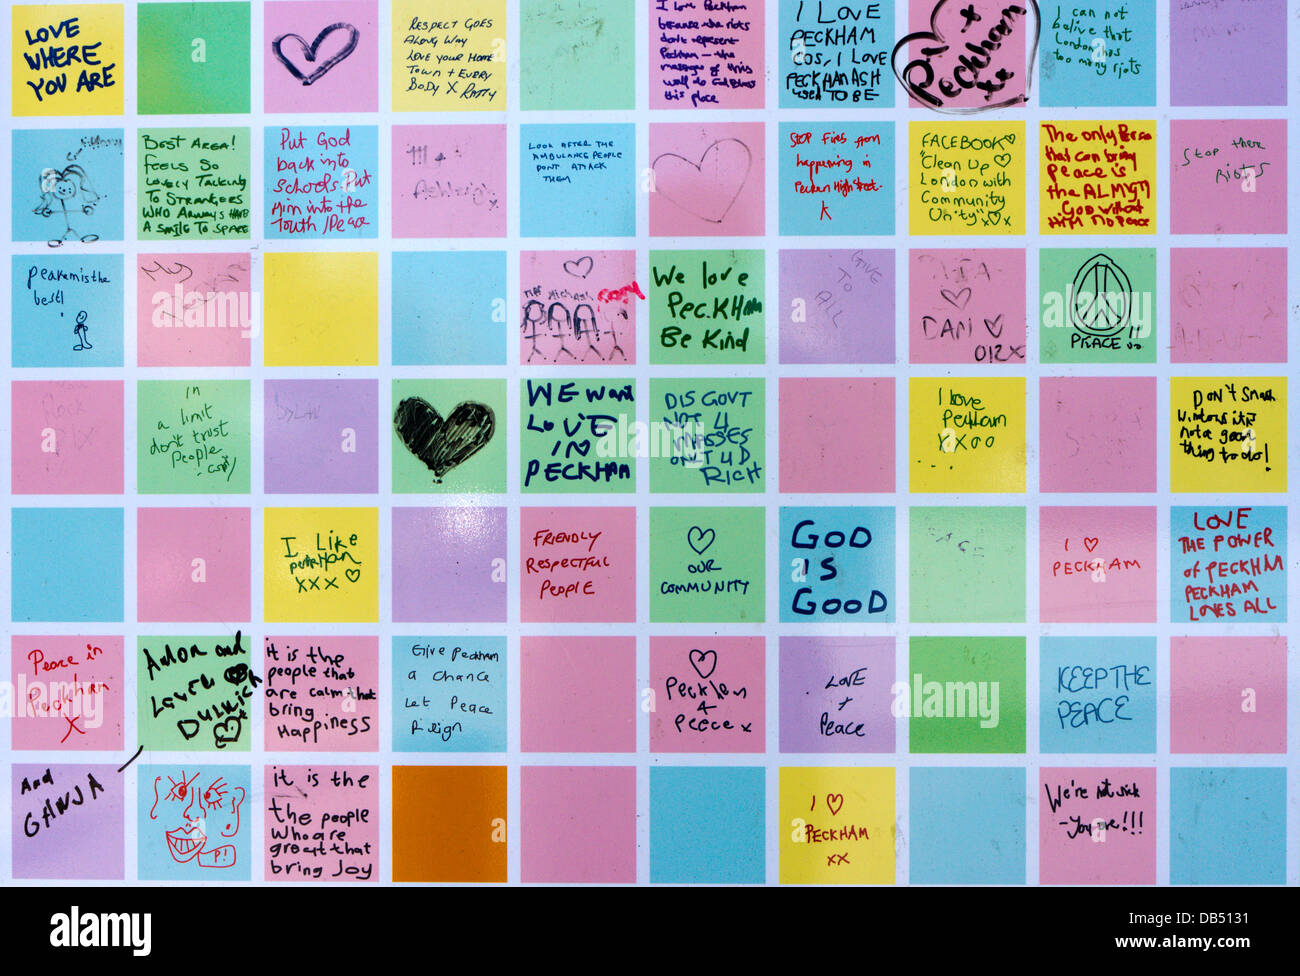 The Peckham Peace Wall was created as a commemoration of the community spirit which followed the 2011 riots. - Stock Image